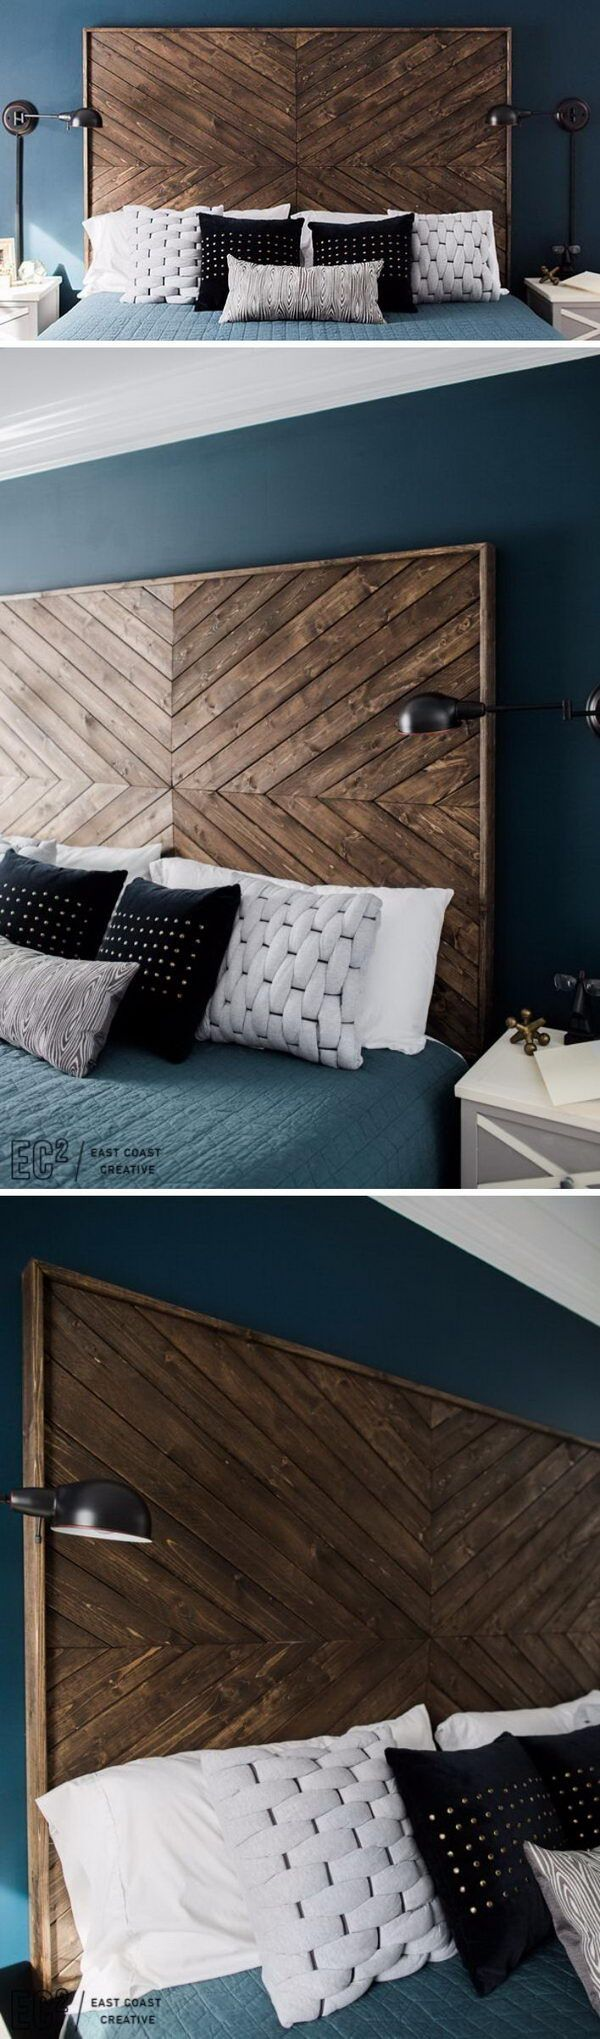 Best 25+ Rustic wood headboard ideas on Pinterest | Headboard ...